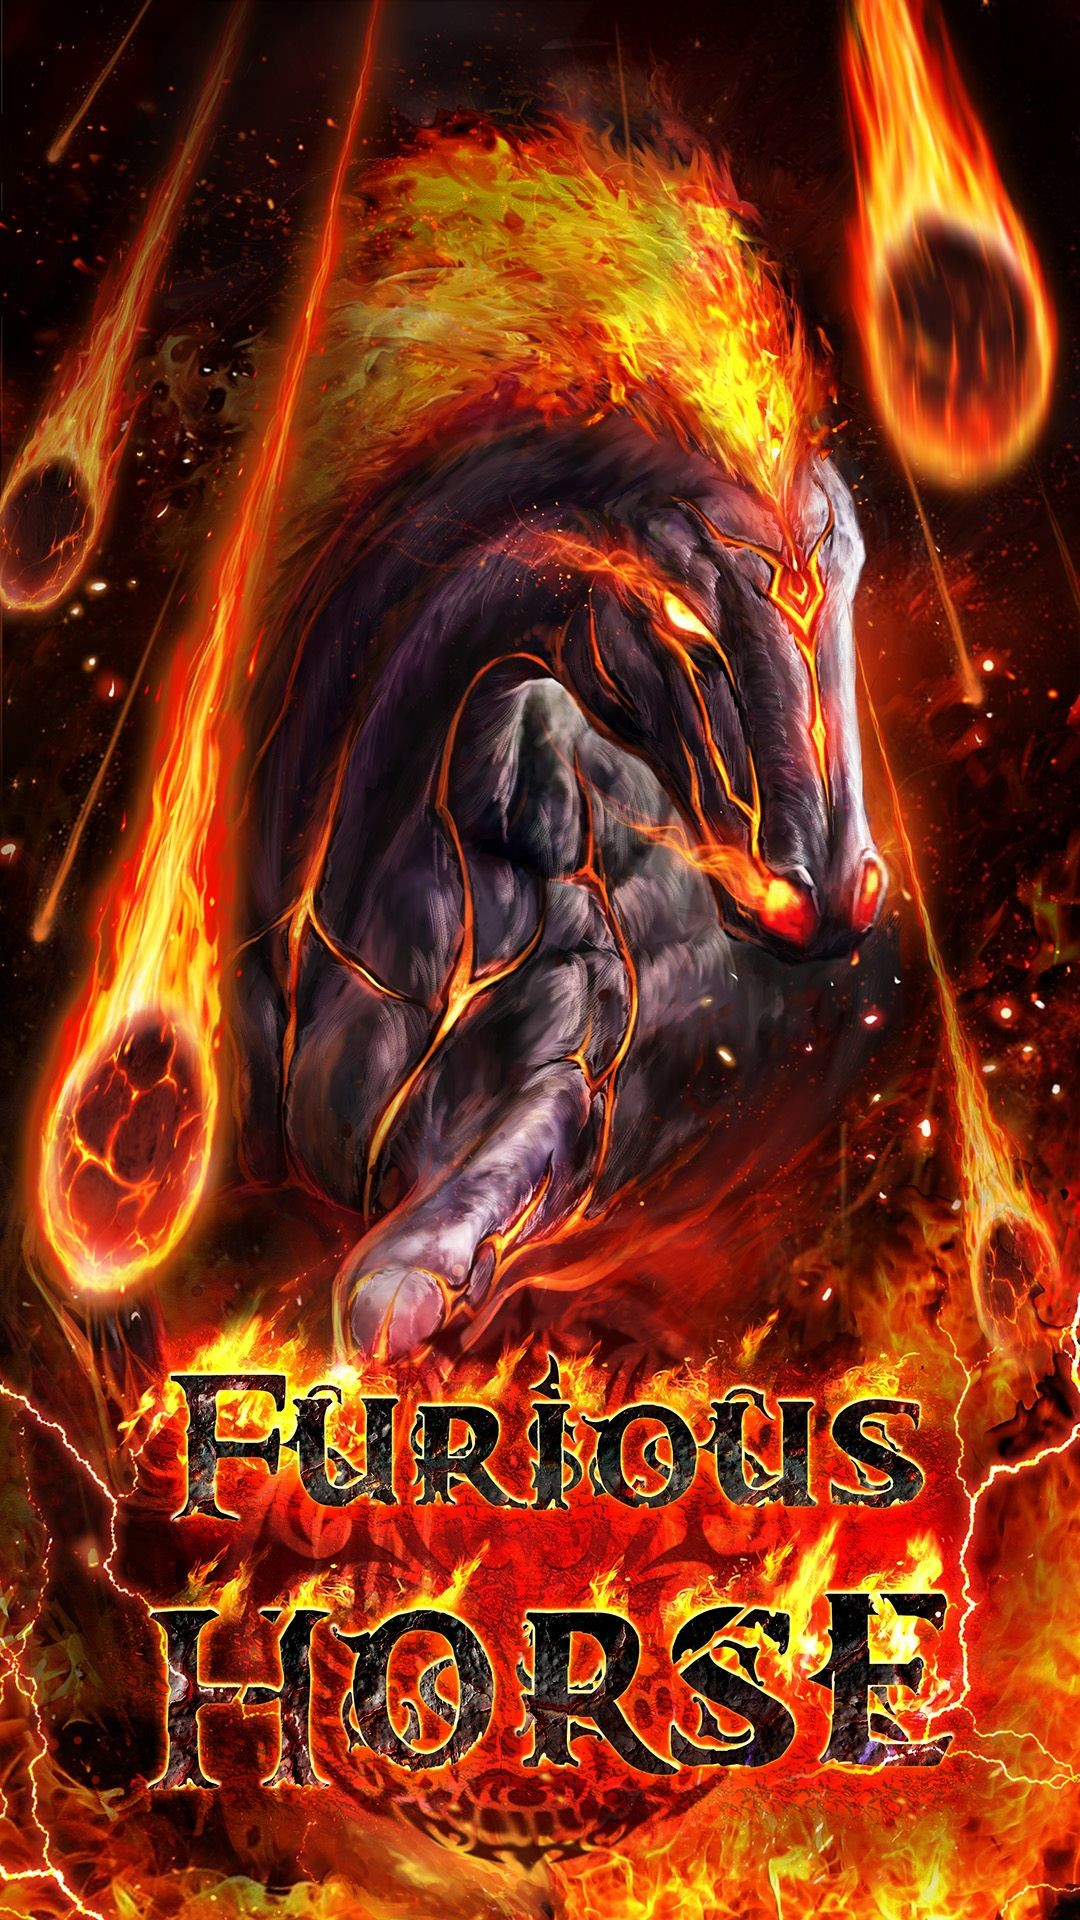 Res: 1080x1920, Furious flaming horse live wallpaper! Android live wallpaper!